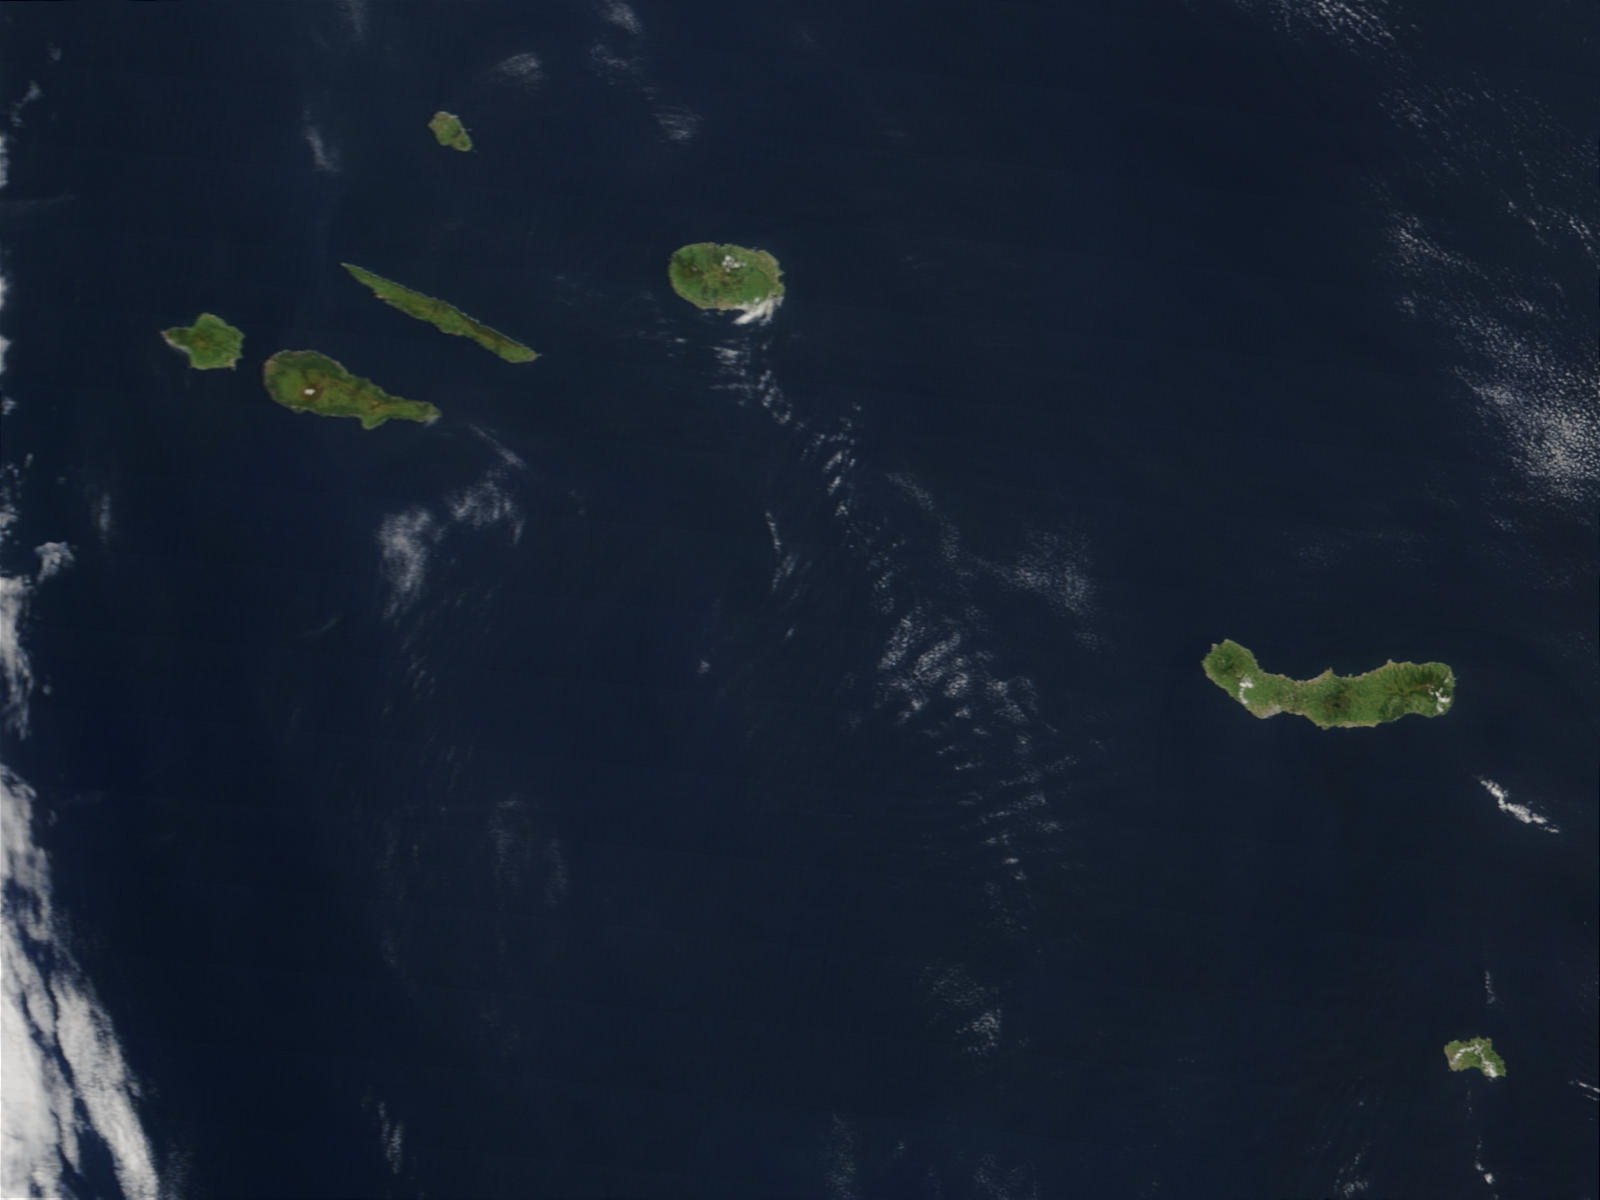 Satellite Image, Photo of the Azores Islands, Portugal